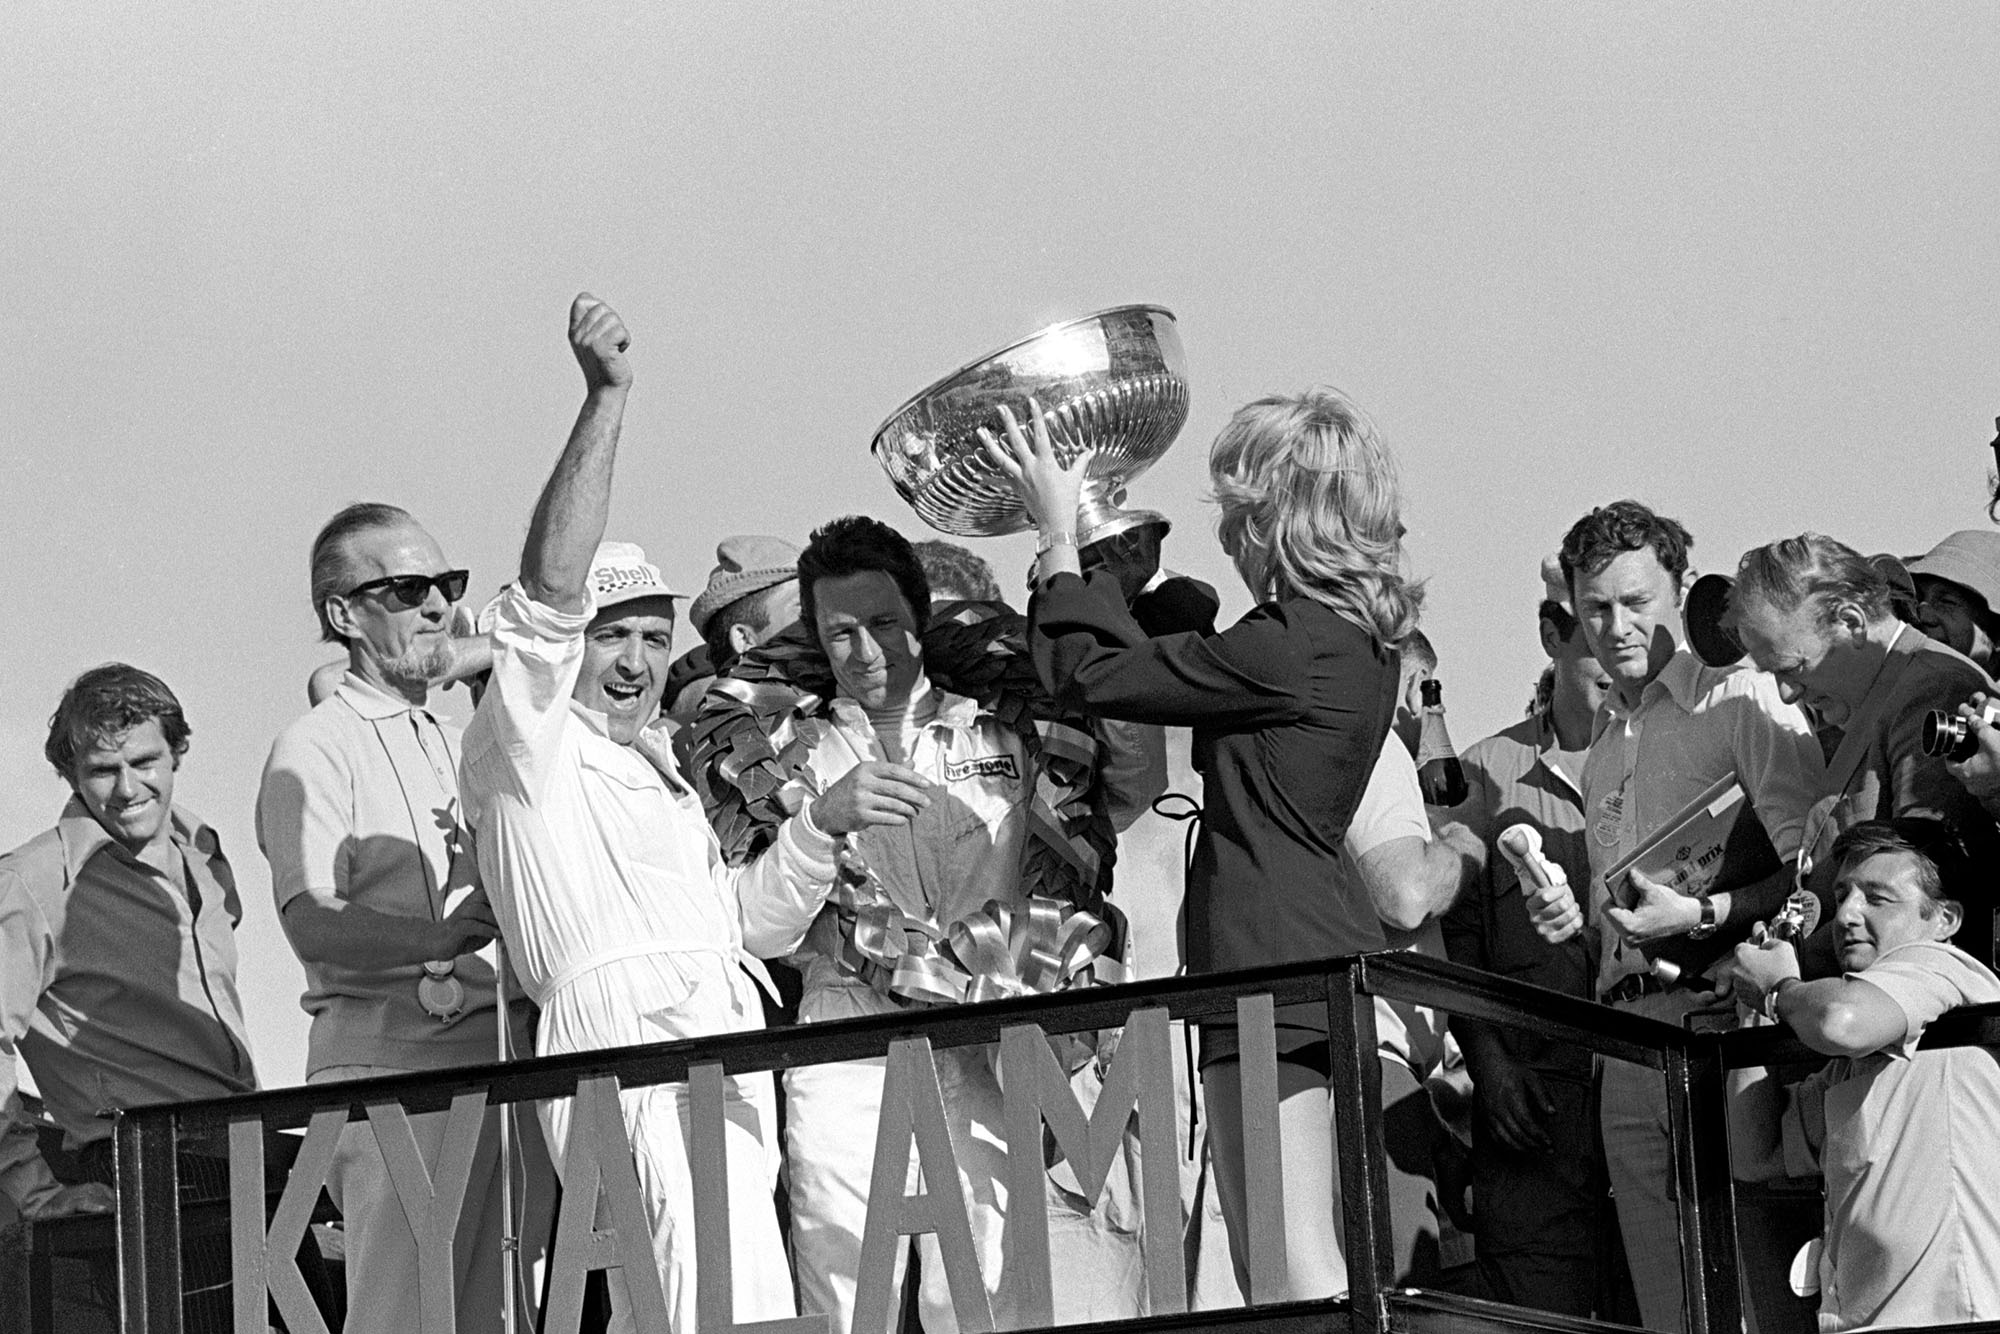 Mario Andretti celebrates on the podium after winning the 1971 South African Grand Prix.